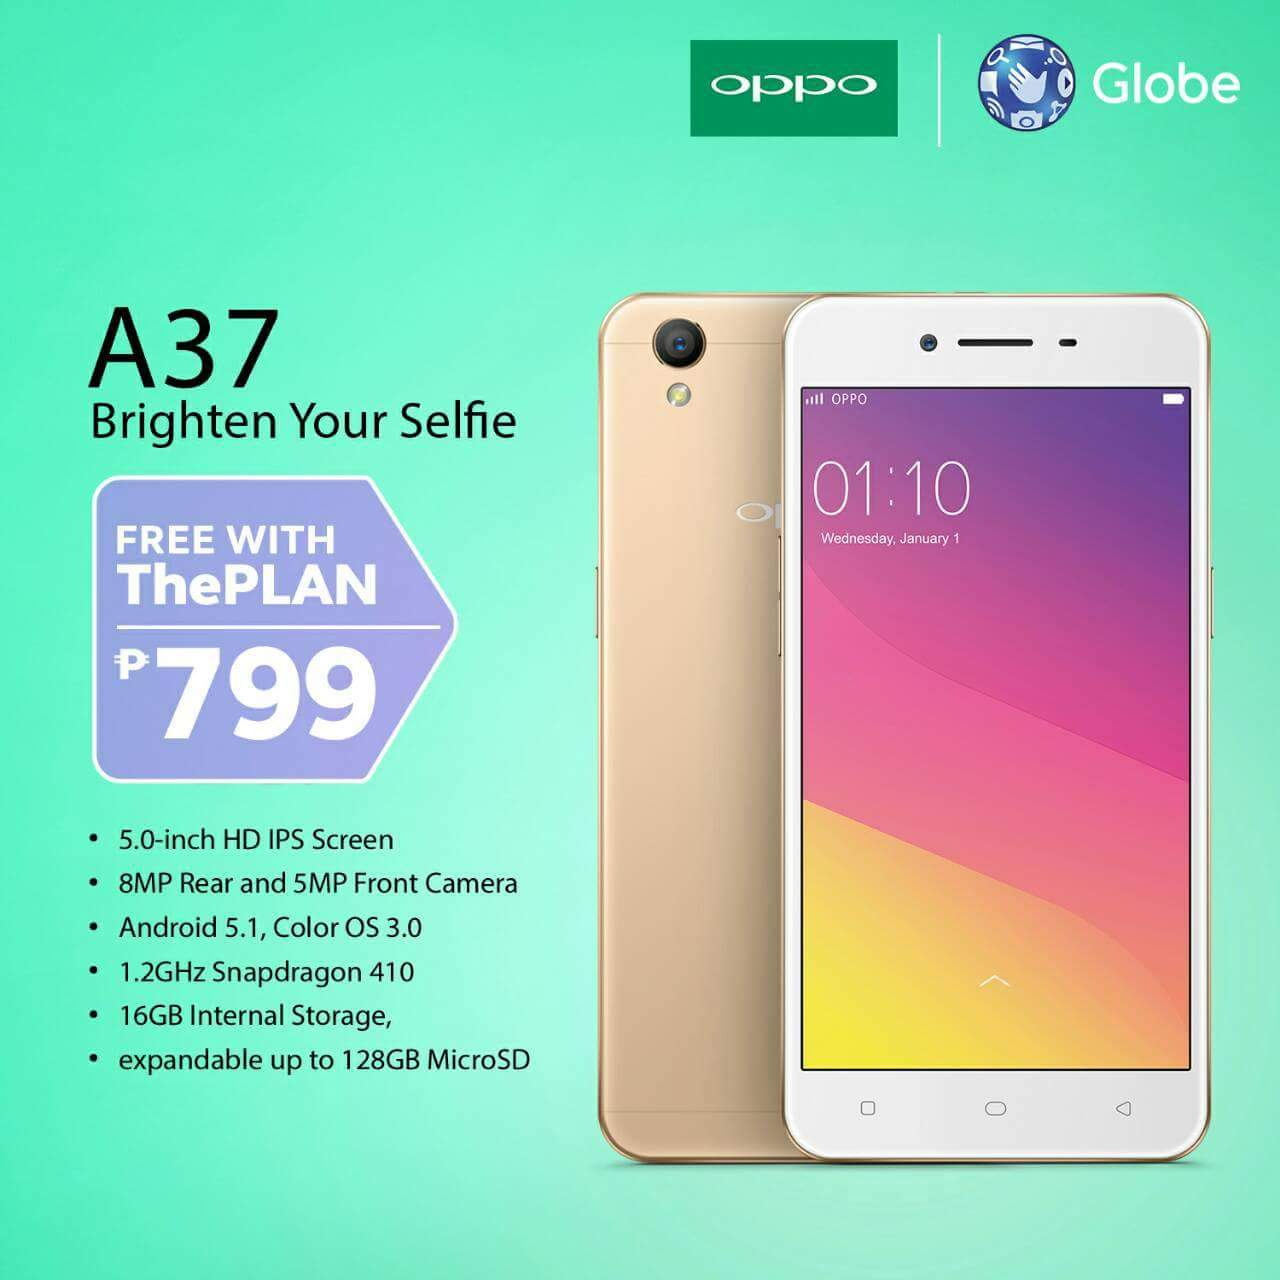 Oppo a37 now free on globe theplan 799 oppo a37 specs include has the cortex a53 version of qualcomm snapdragon 410 quad core processor coloros 30 based on android 51 lollipop stopboris Images